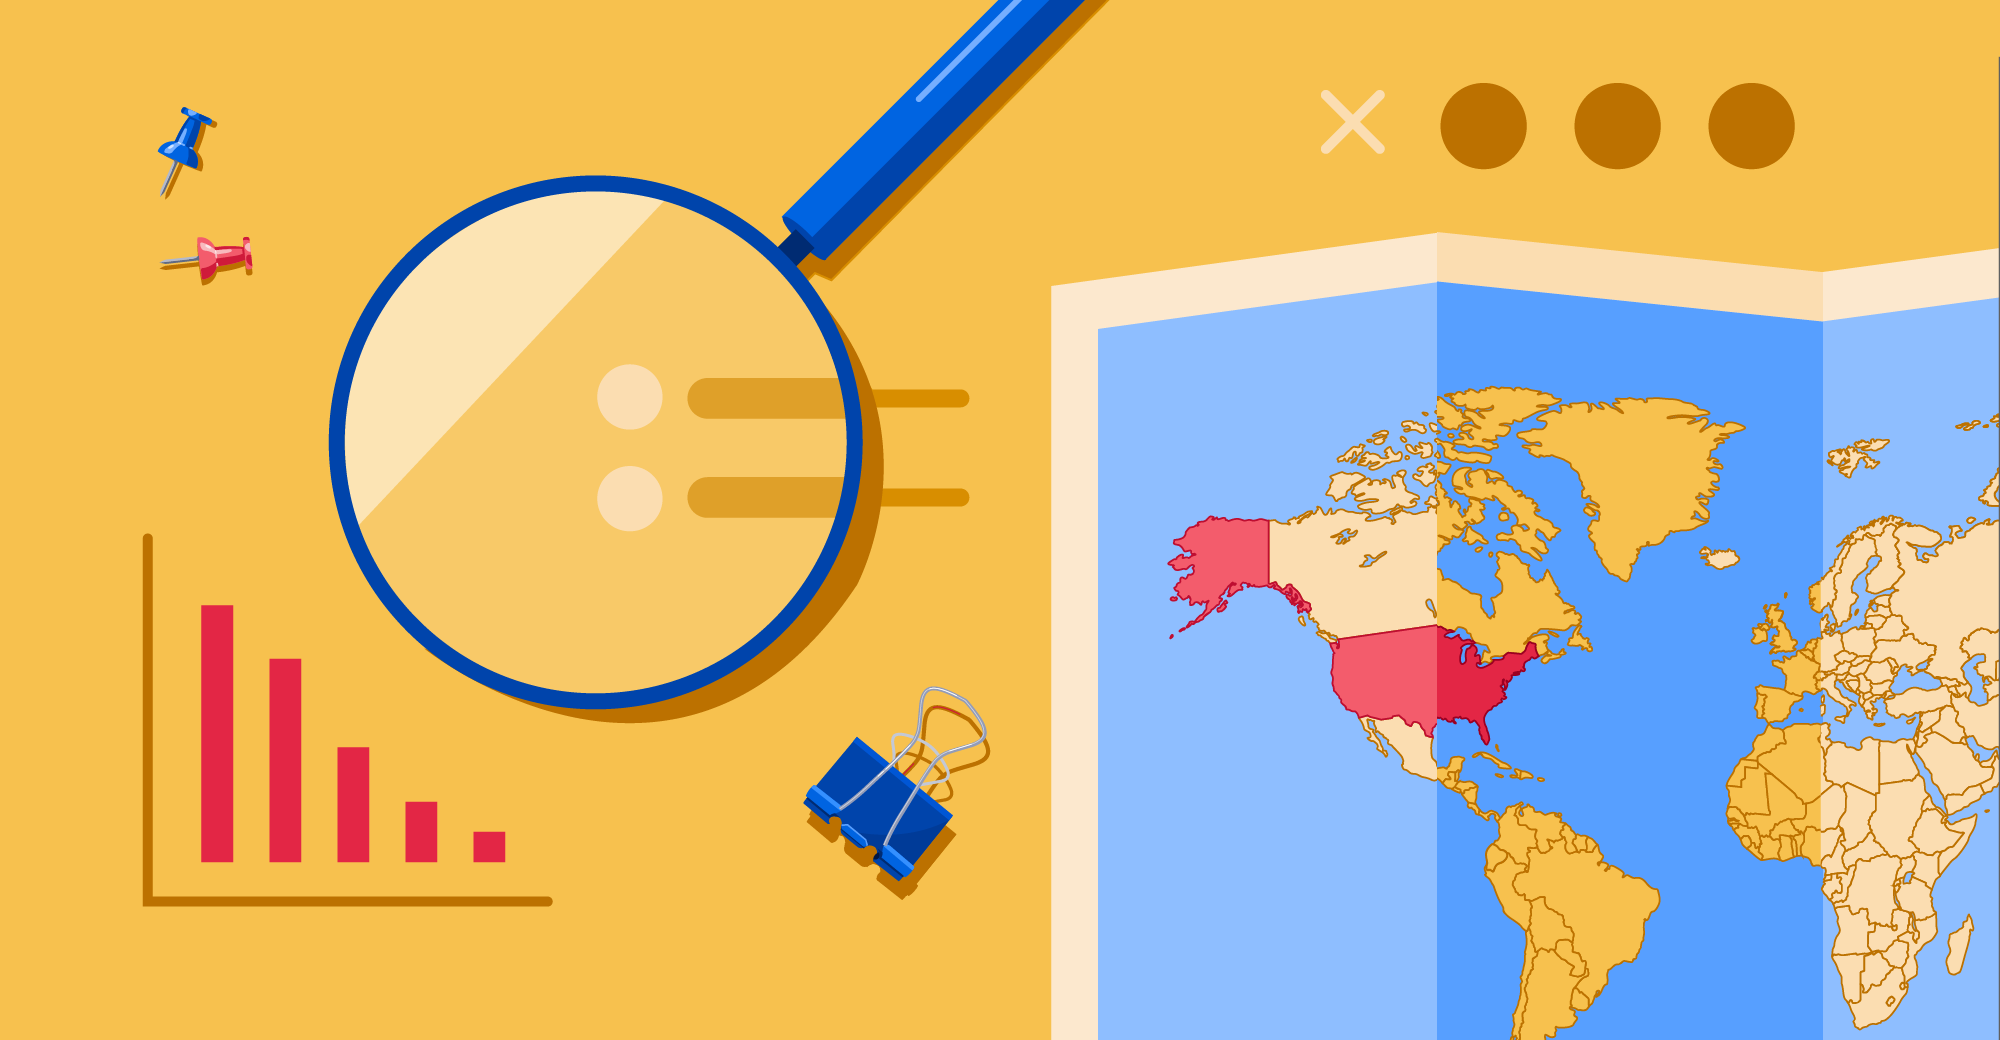 A magnifying glass and a map of the world with the United States highlighted